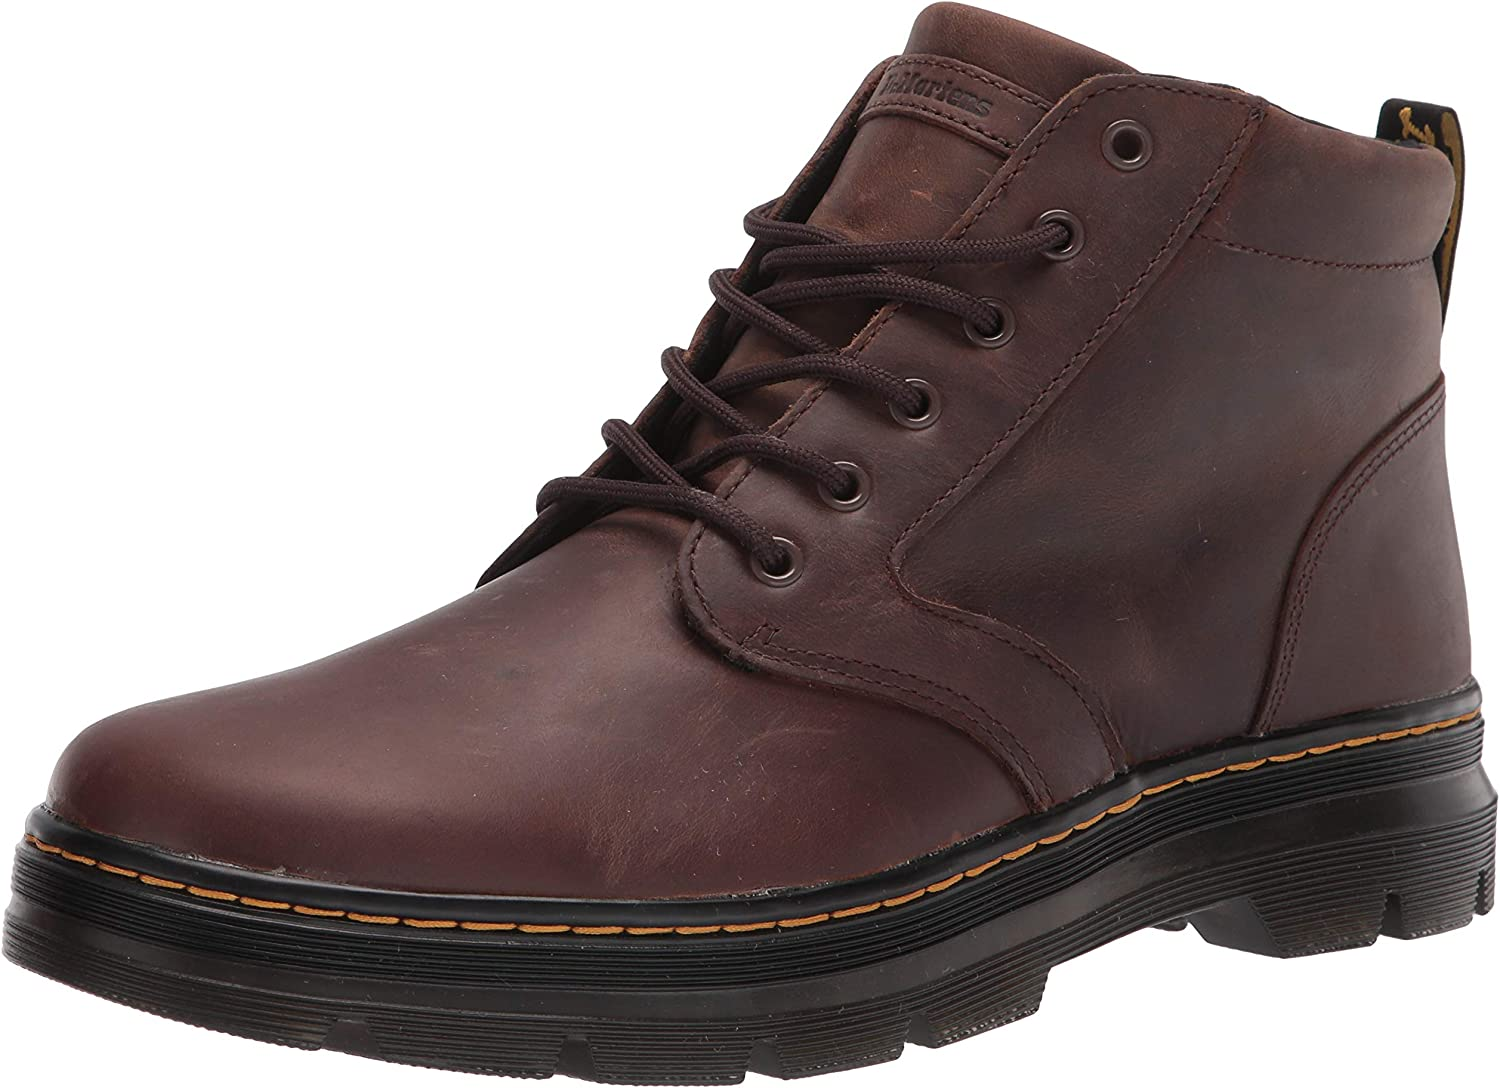 Dr. Martens Unisex-Adult 店舗 Fashion 2020モデル Boot Lace